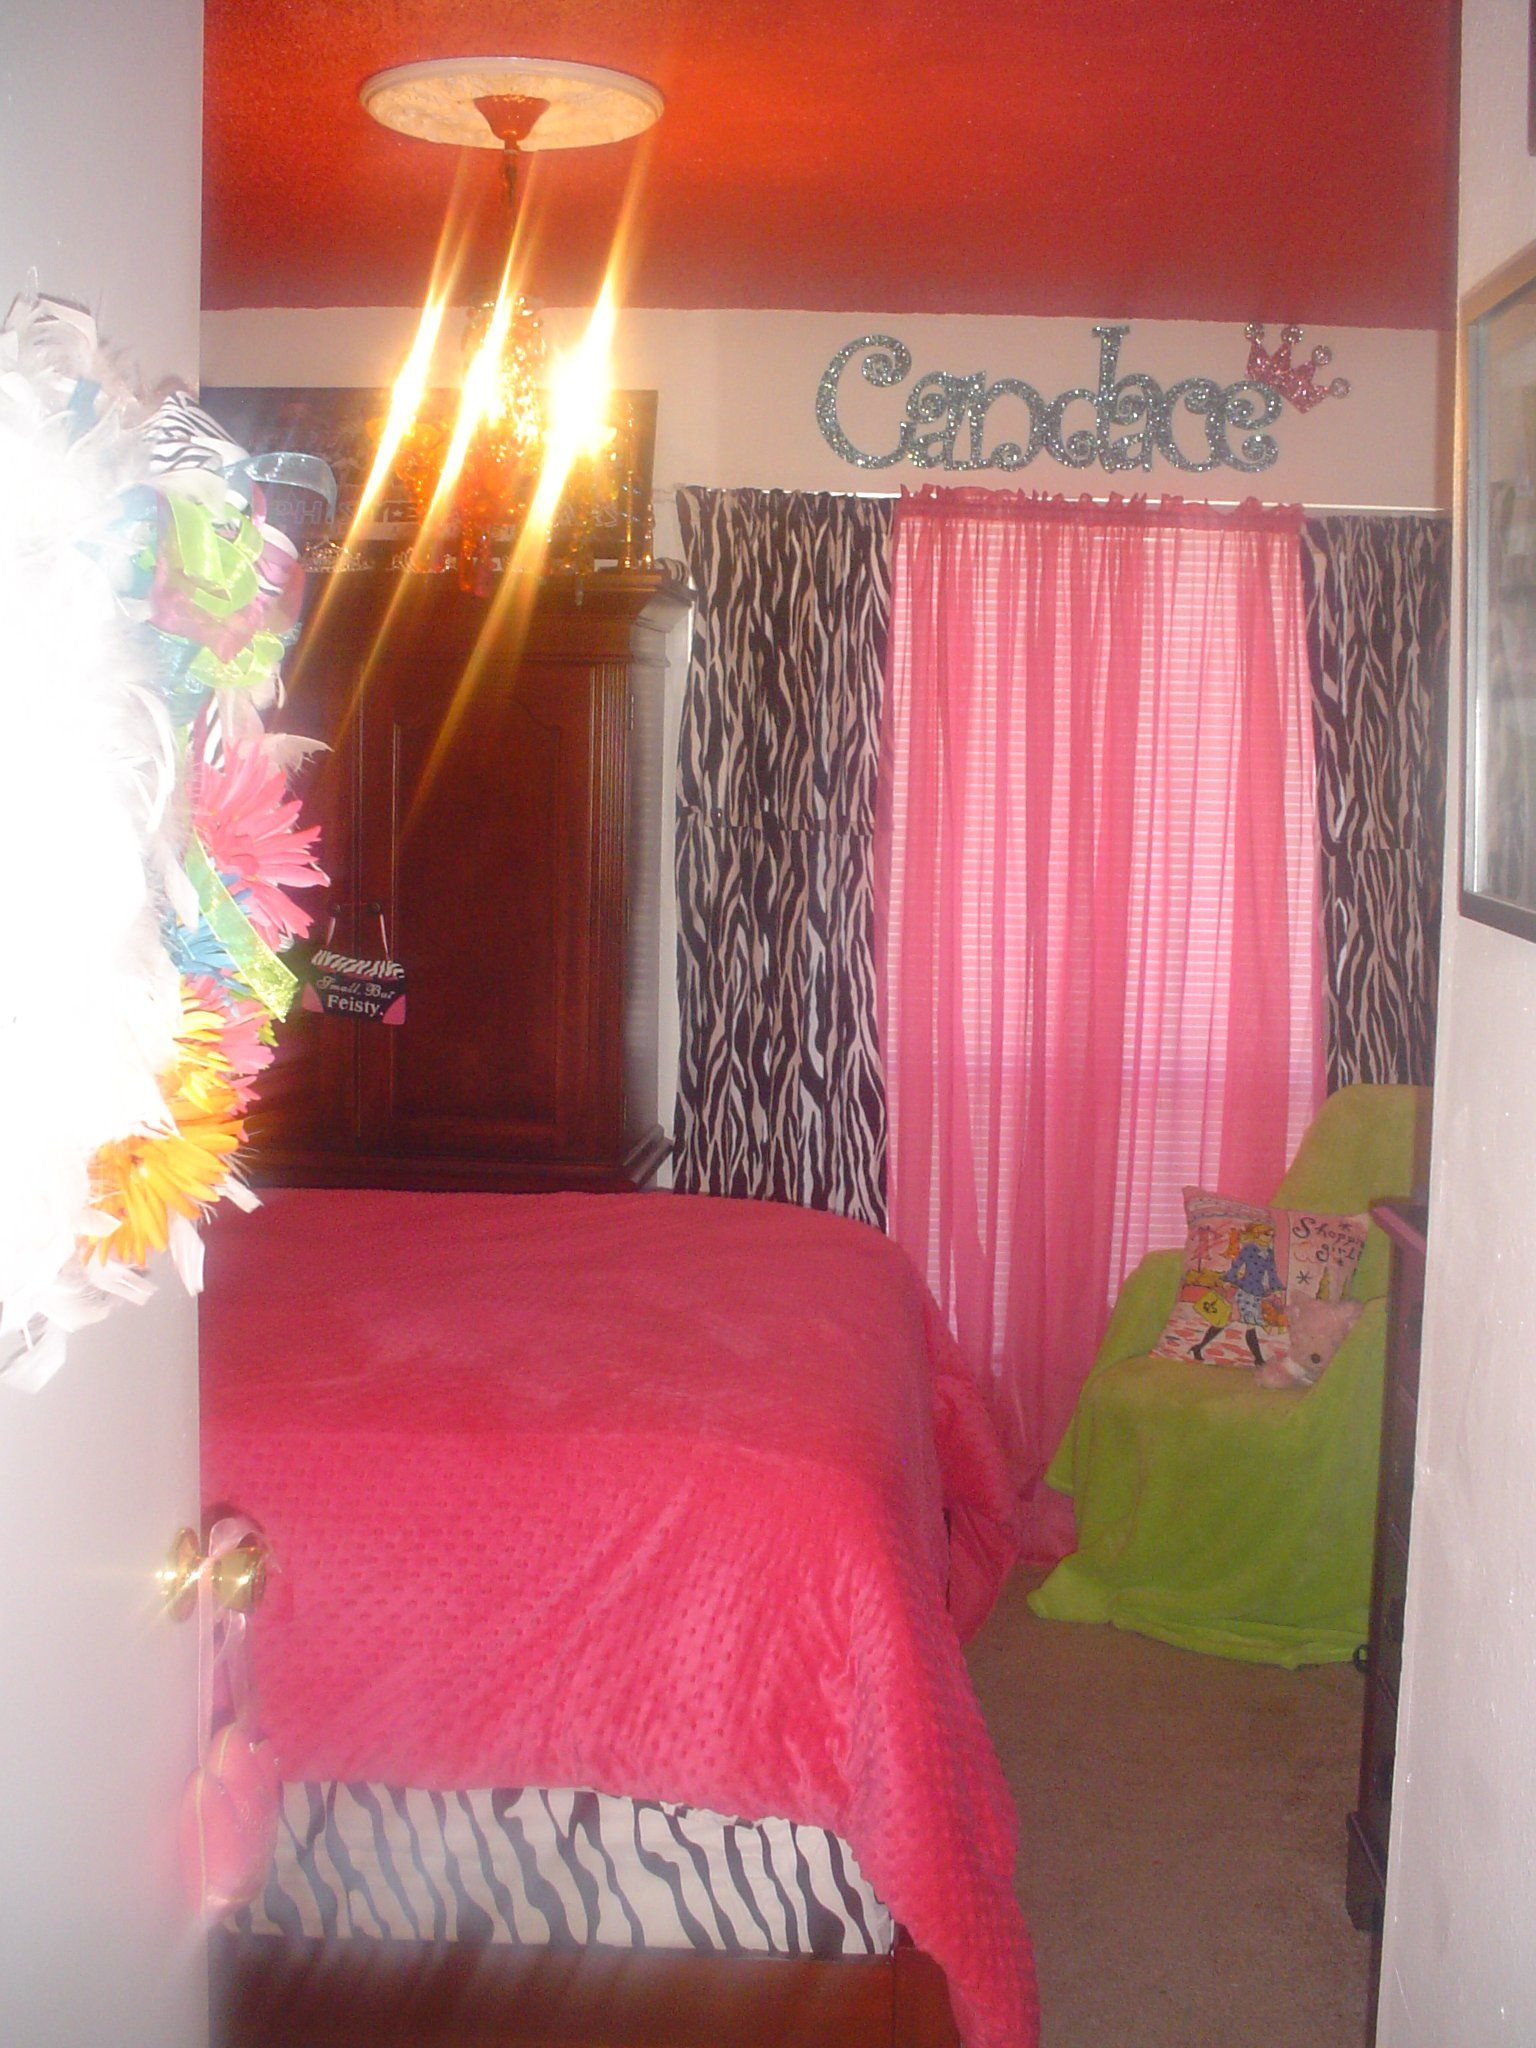 Zebra window coverings  pink zebra  colorful chandelier painted ceilings  candaceus